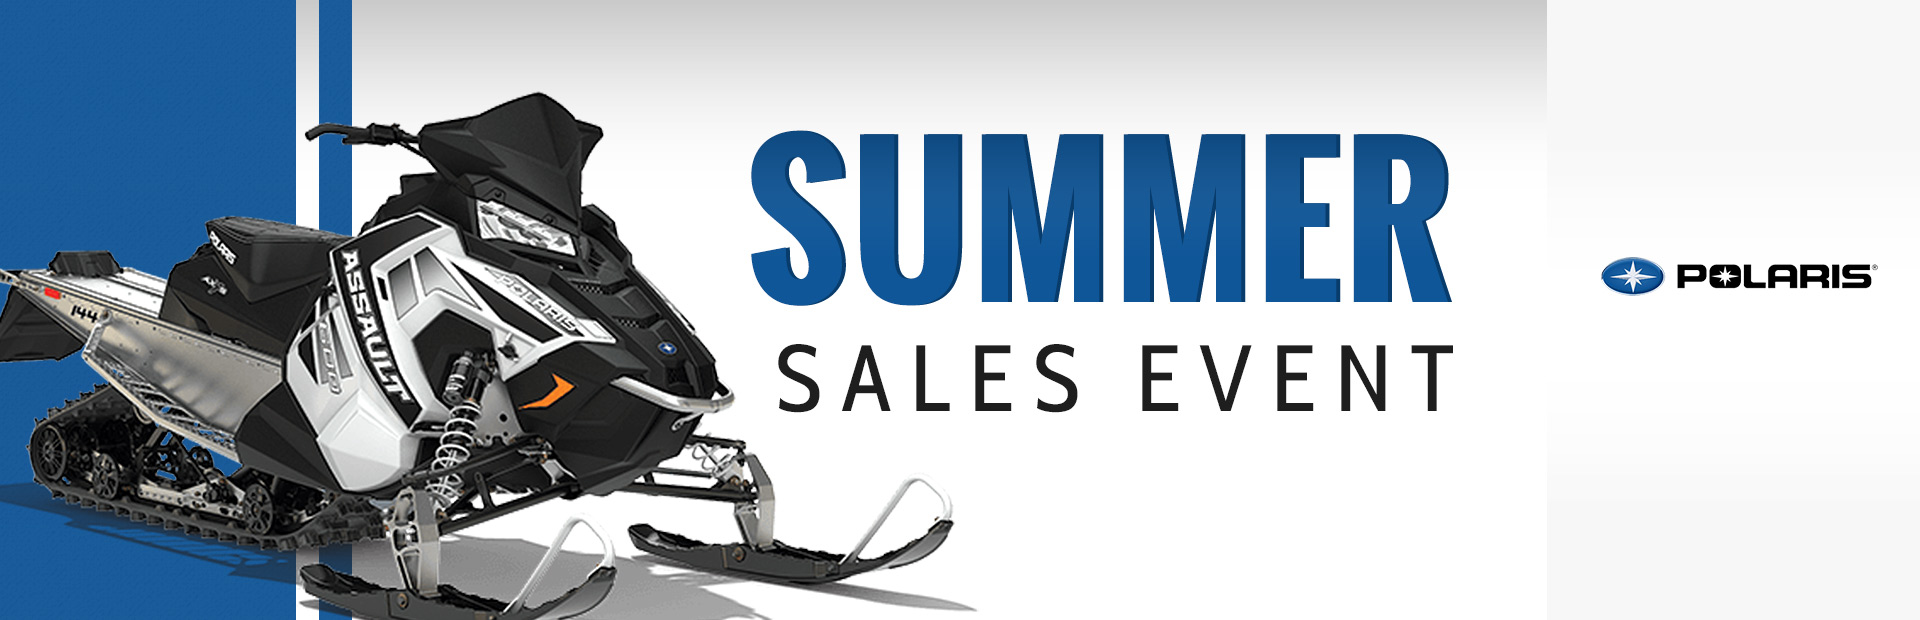 Polaris Industries: Summer Sales Event- Snowmobiles